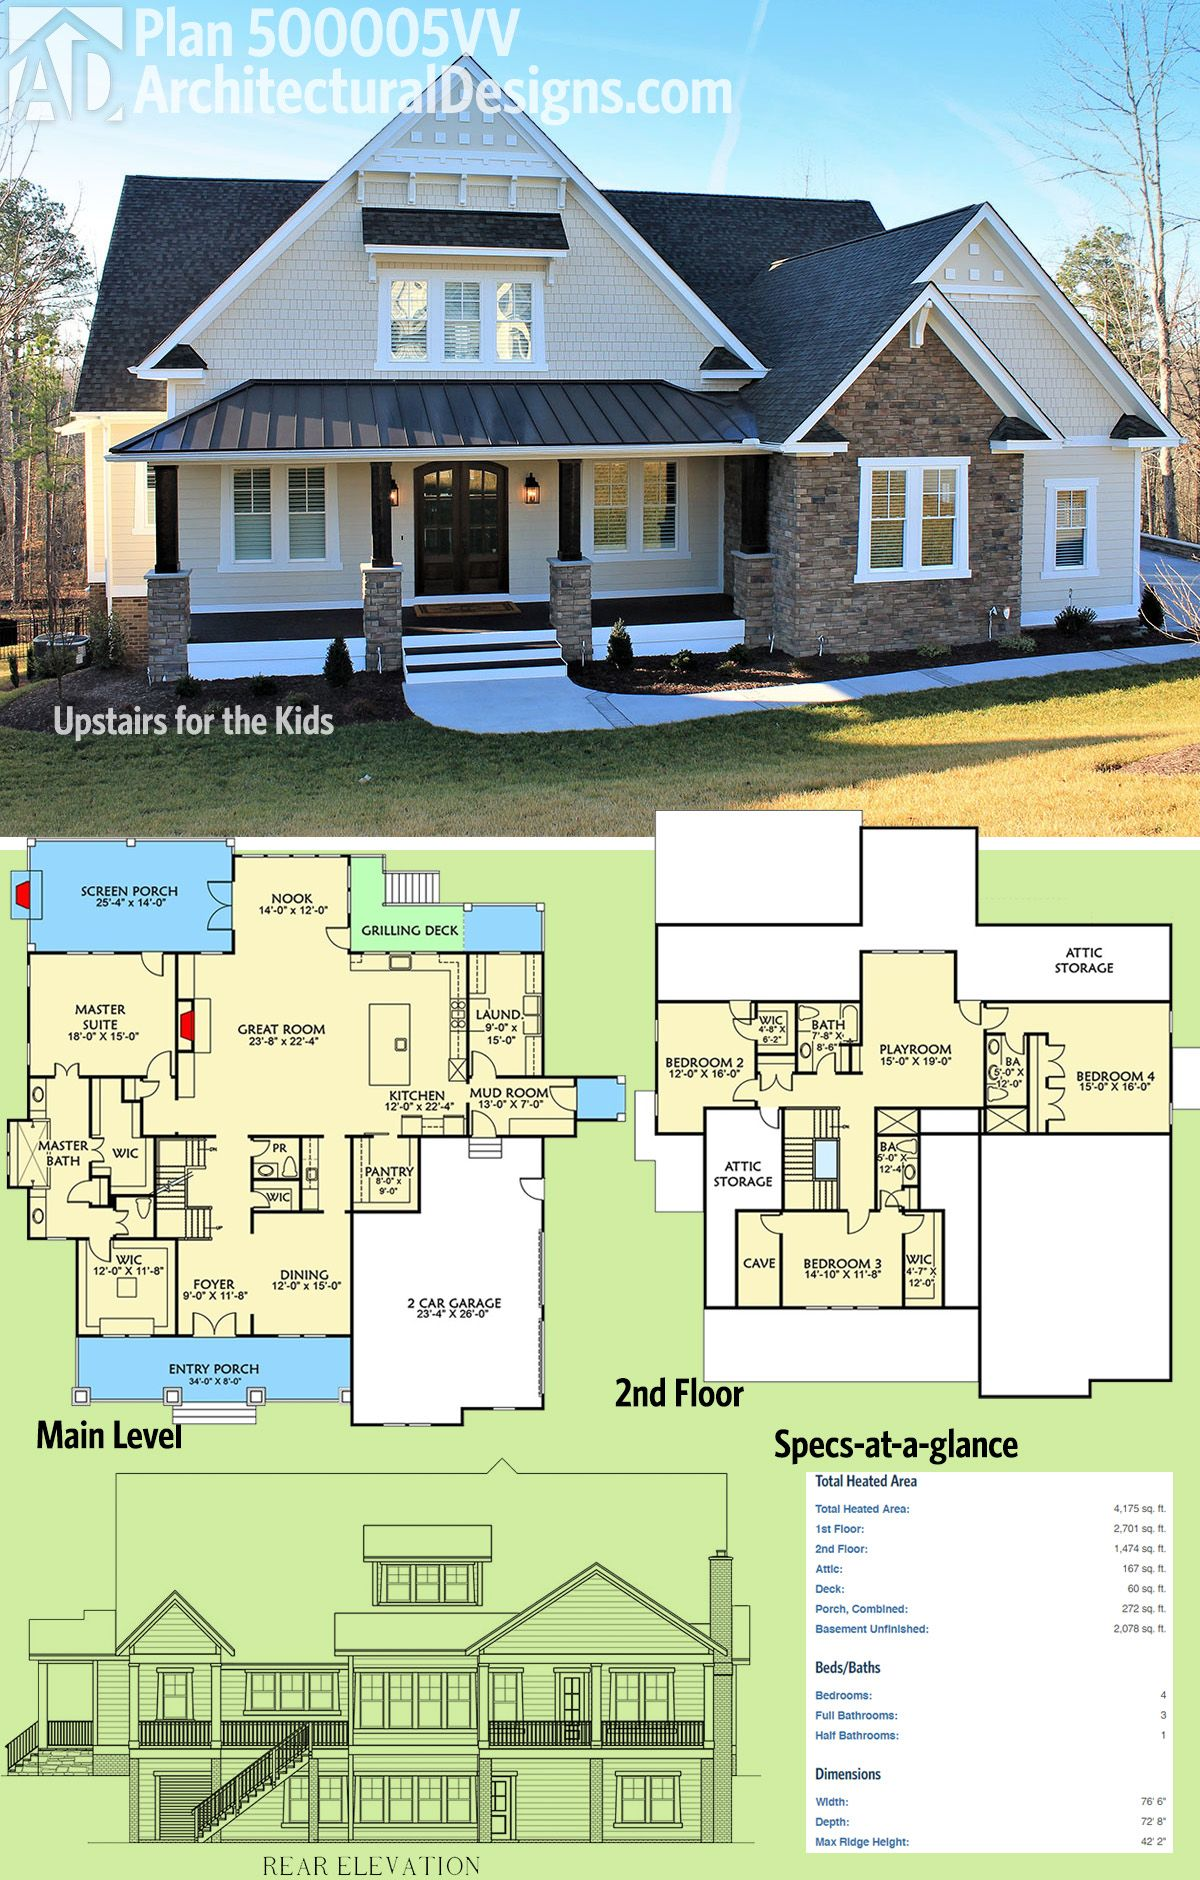 Architectural designs house plan vv was designed to give the kids  their own floor upstairs beds in all this craftsman design gives you over also for home pinterest rh